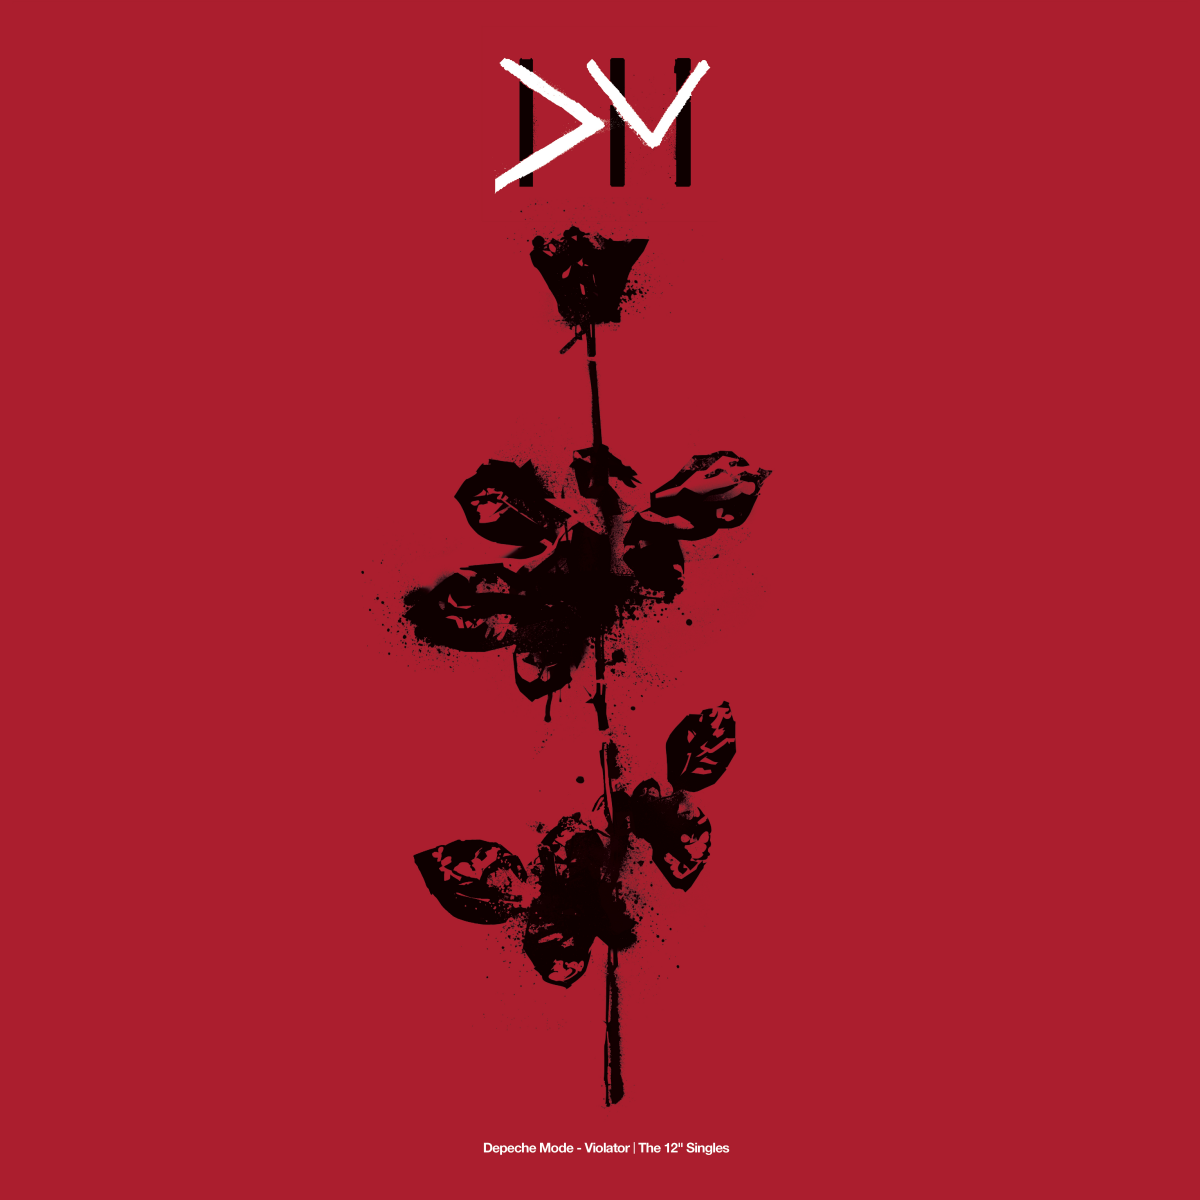 "Depeche Mode > Violator: The 12"" Singles"